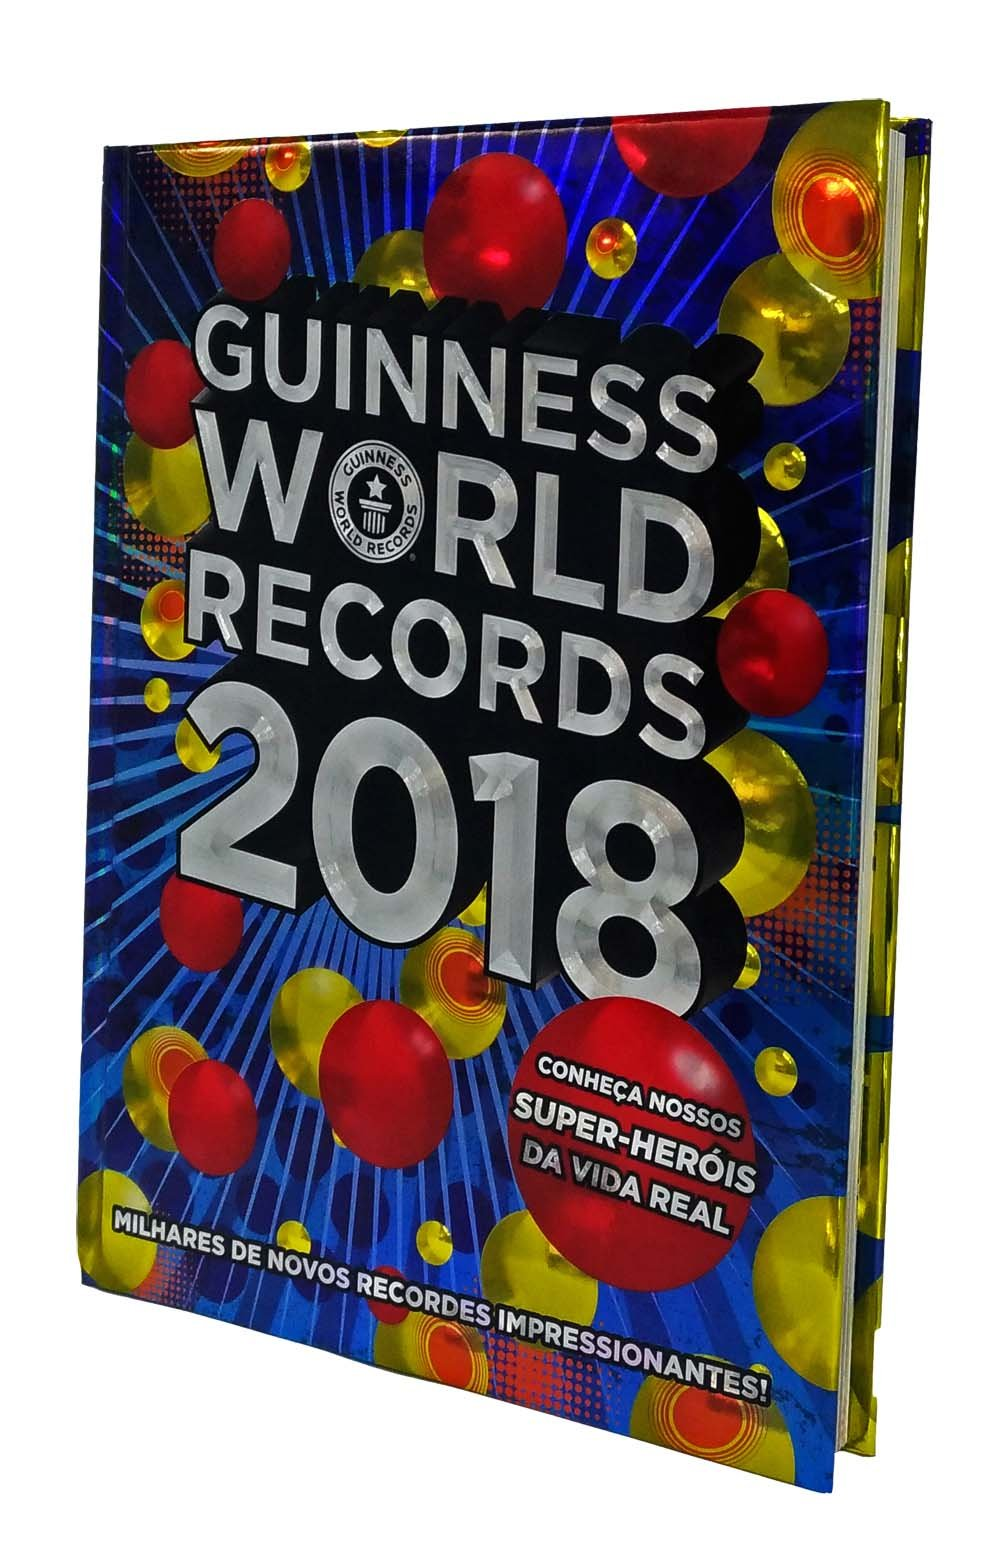 Guinness World Records 2018 (Em Portugues do Brasil): Varios Autores: 9788595080881: Amazon.com: Books